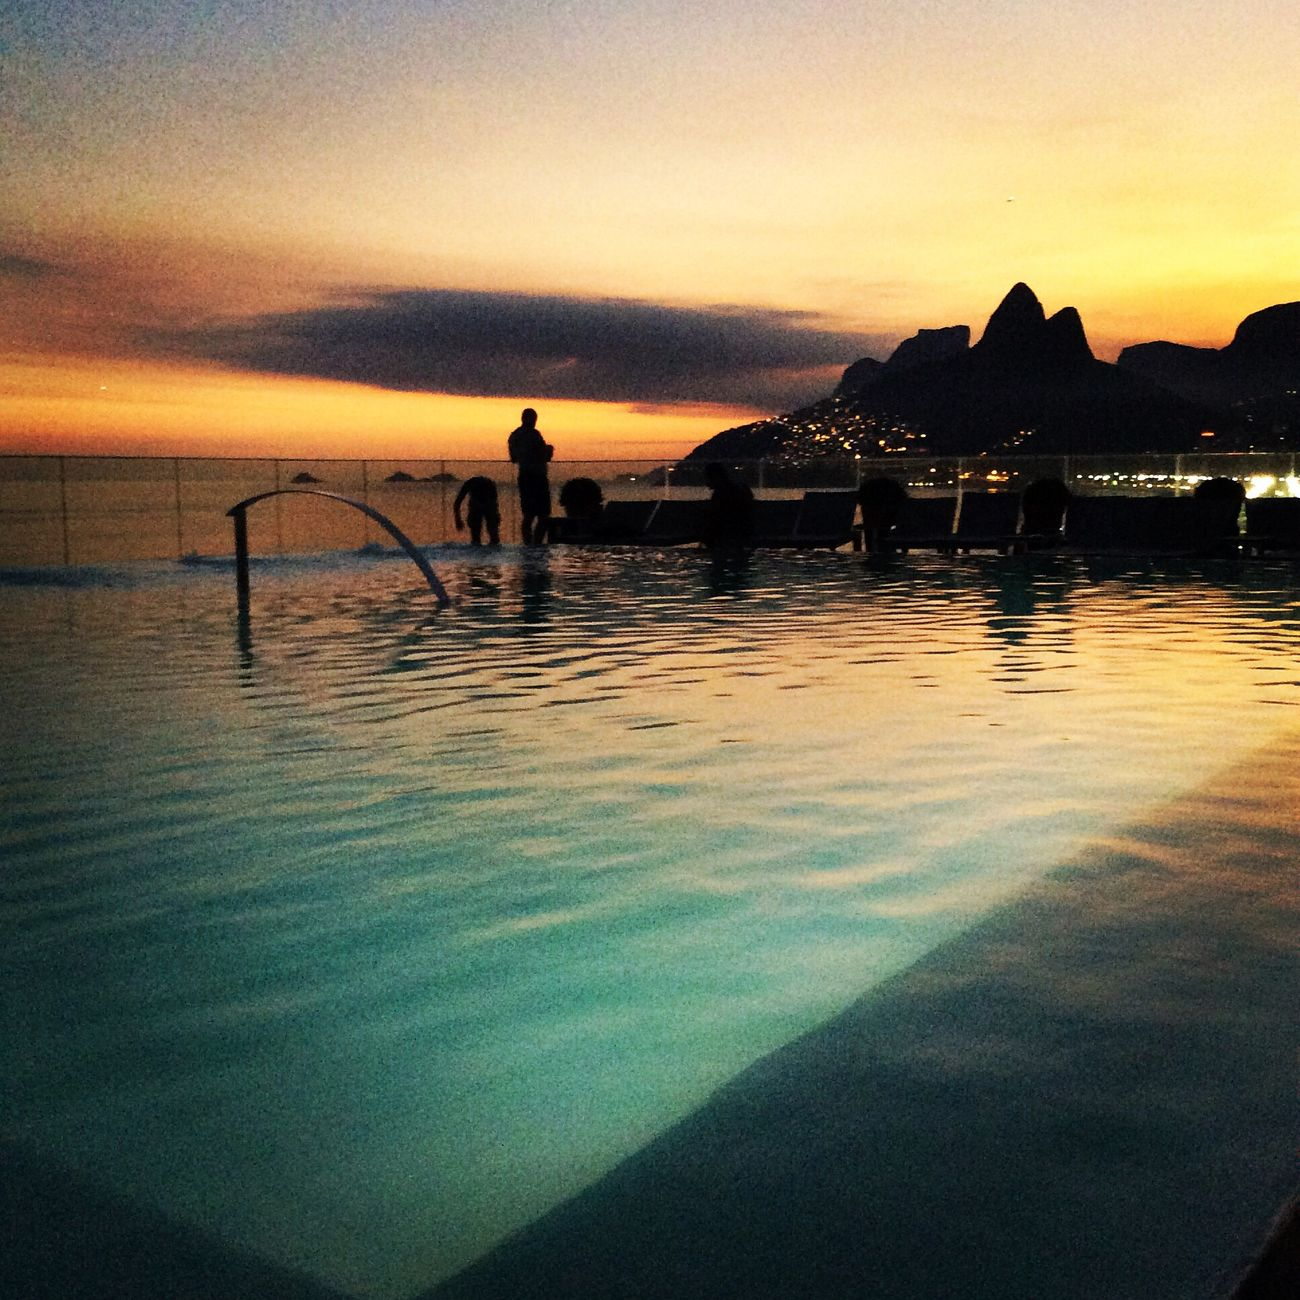 Sunset Rio De Janeiro is always pretty special over looking Ipanema Beach